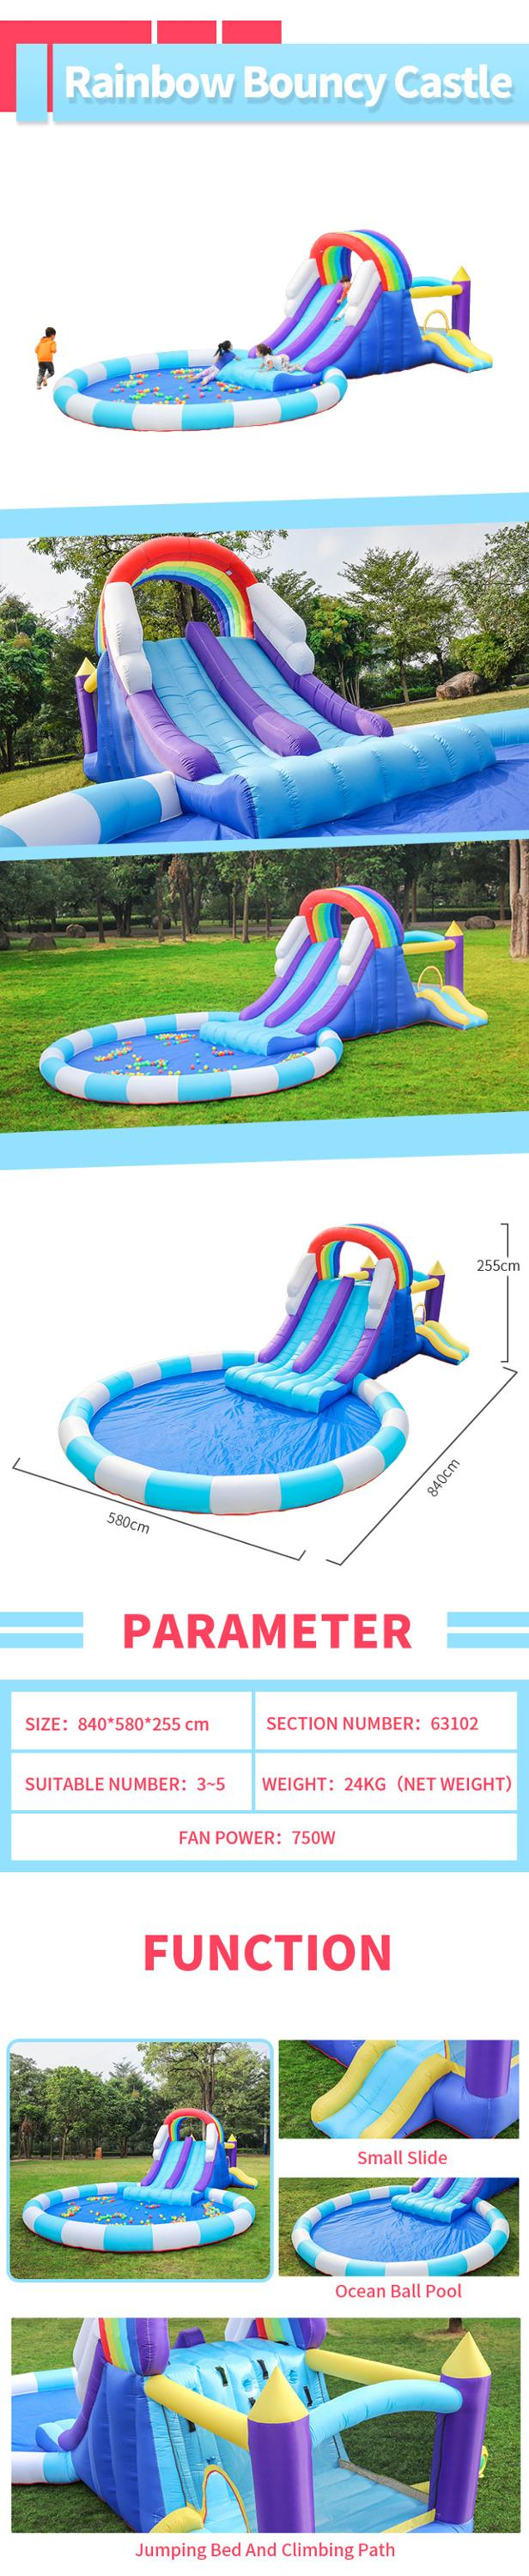 Airmyfun pvc custom kids best sale outdoor wholesale oxford fabric boncy castle house with water pool